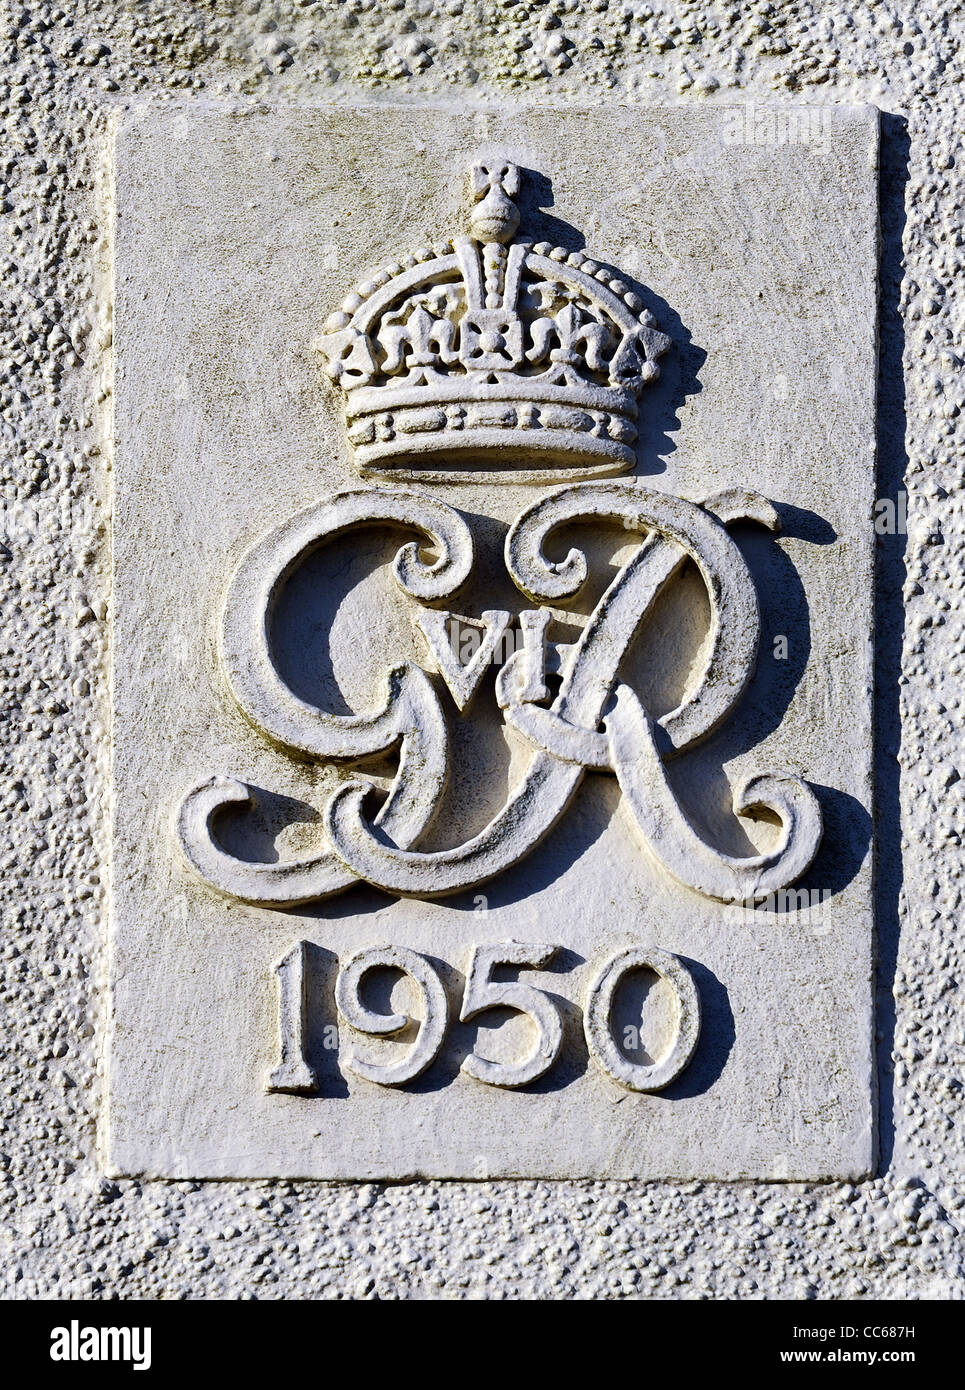 A 1950 Royal insignia on an old telephone exchange at Gurnards head in Cornwall, UK - Stock Image